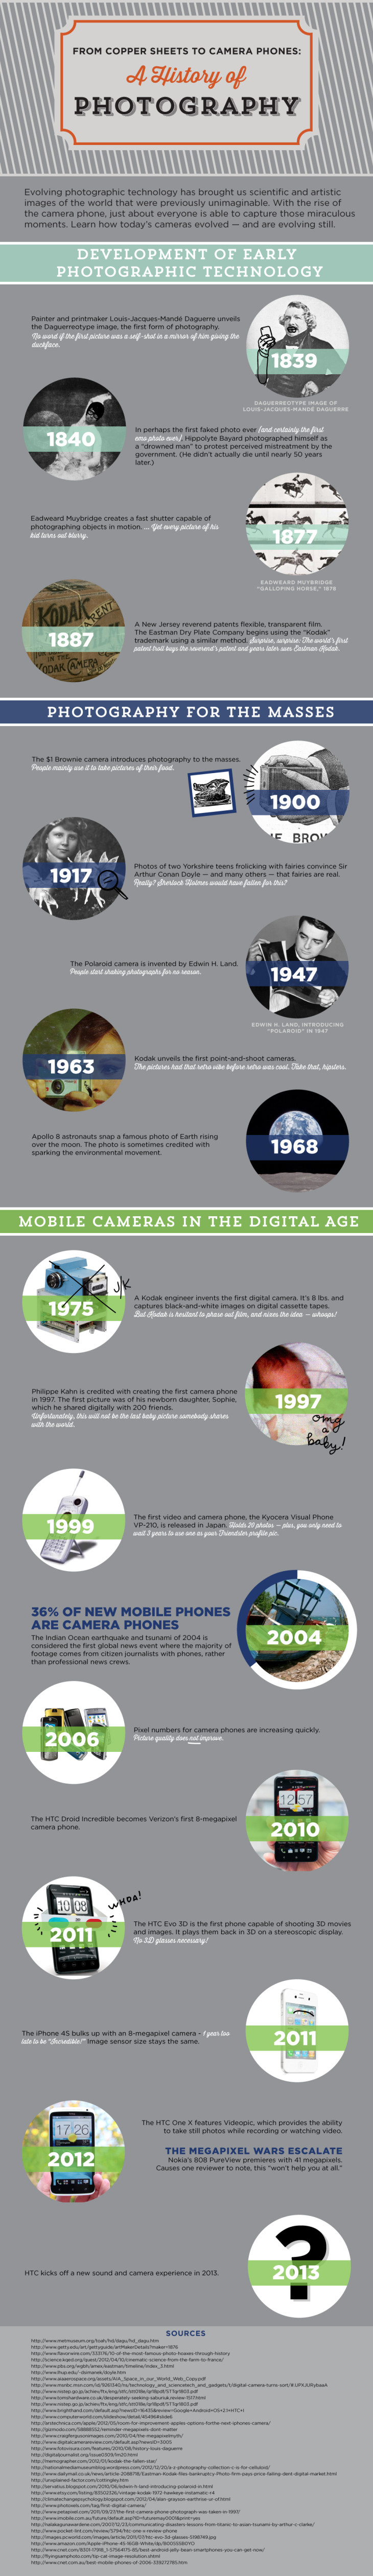 photography infographic